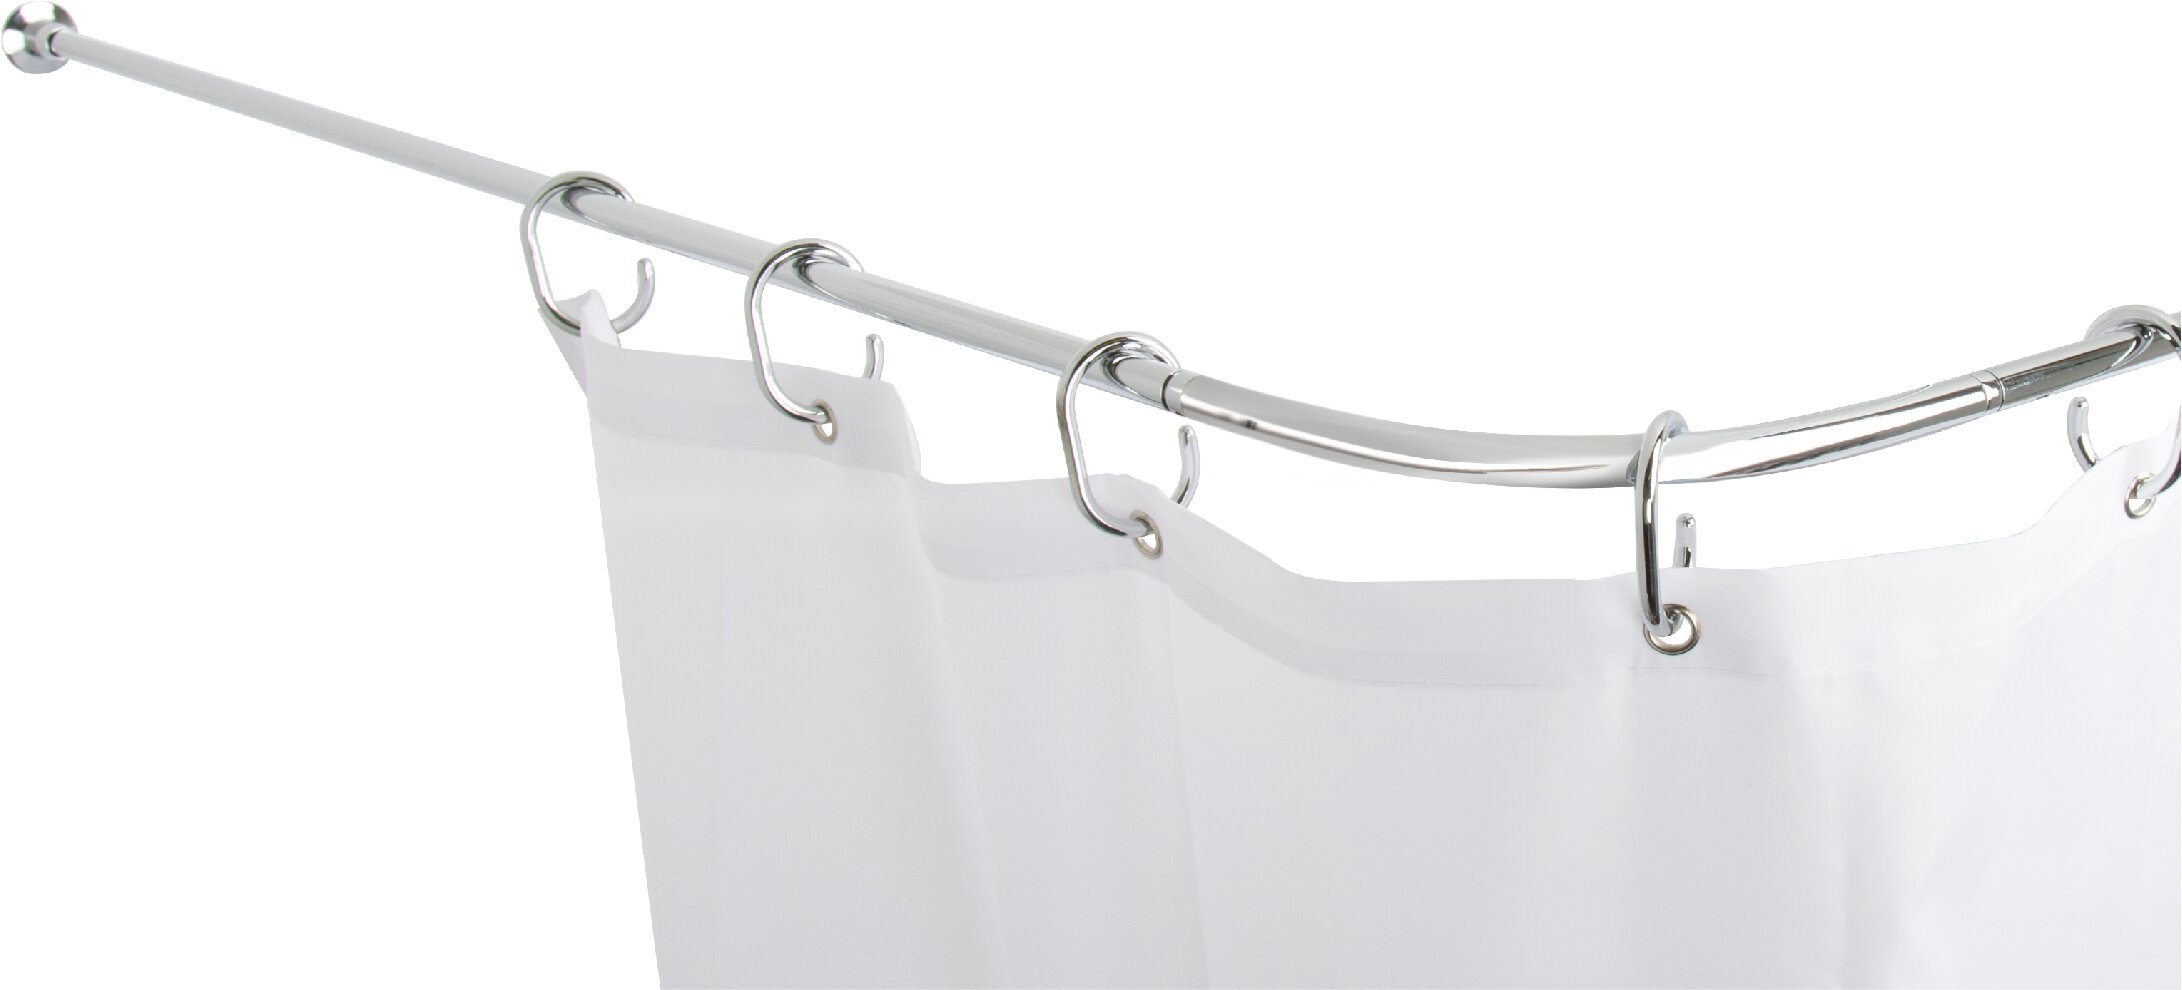 Belfry Bathroom Fineline 252cm Adjustable Curved Fixed Shower Curtain Rail And Hook Set